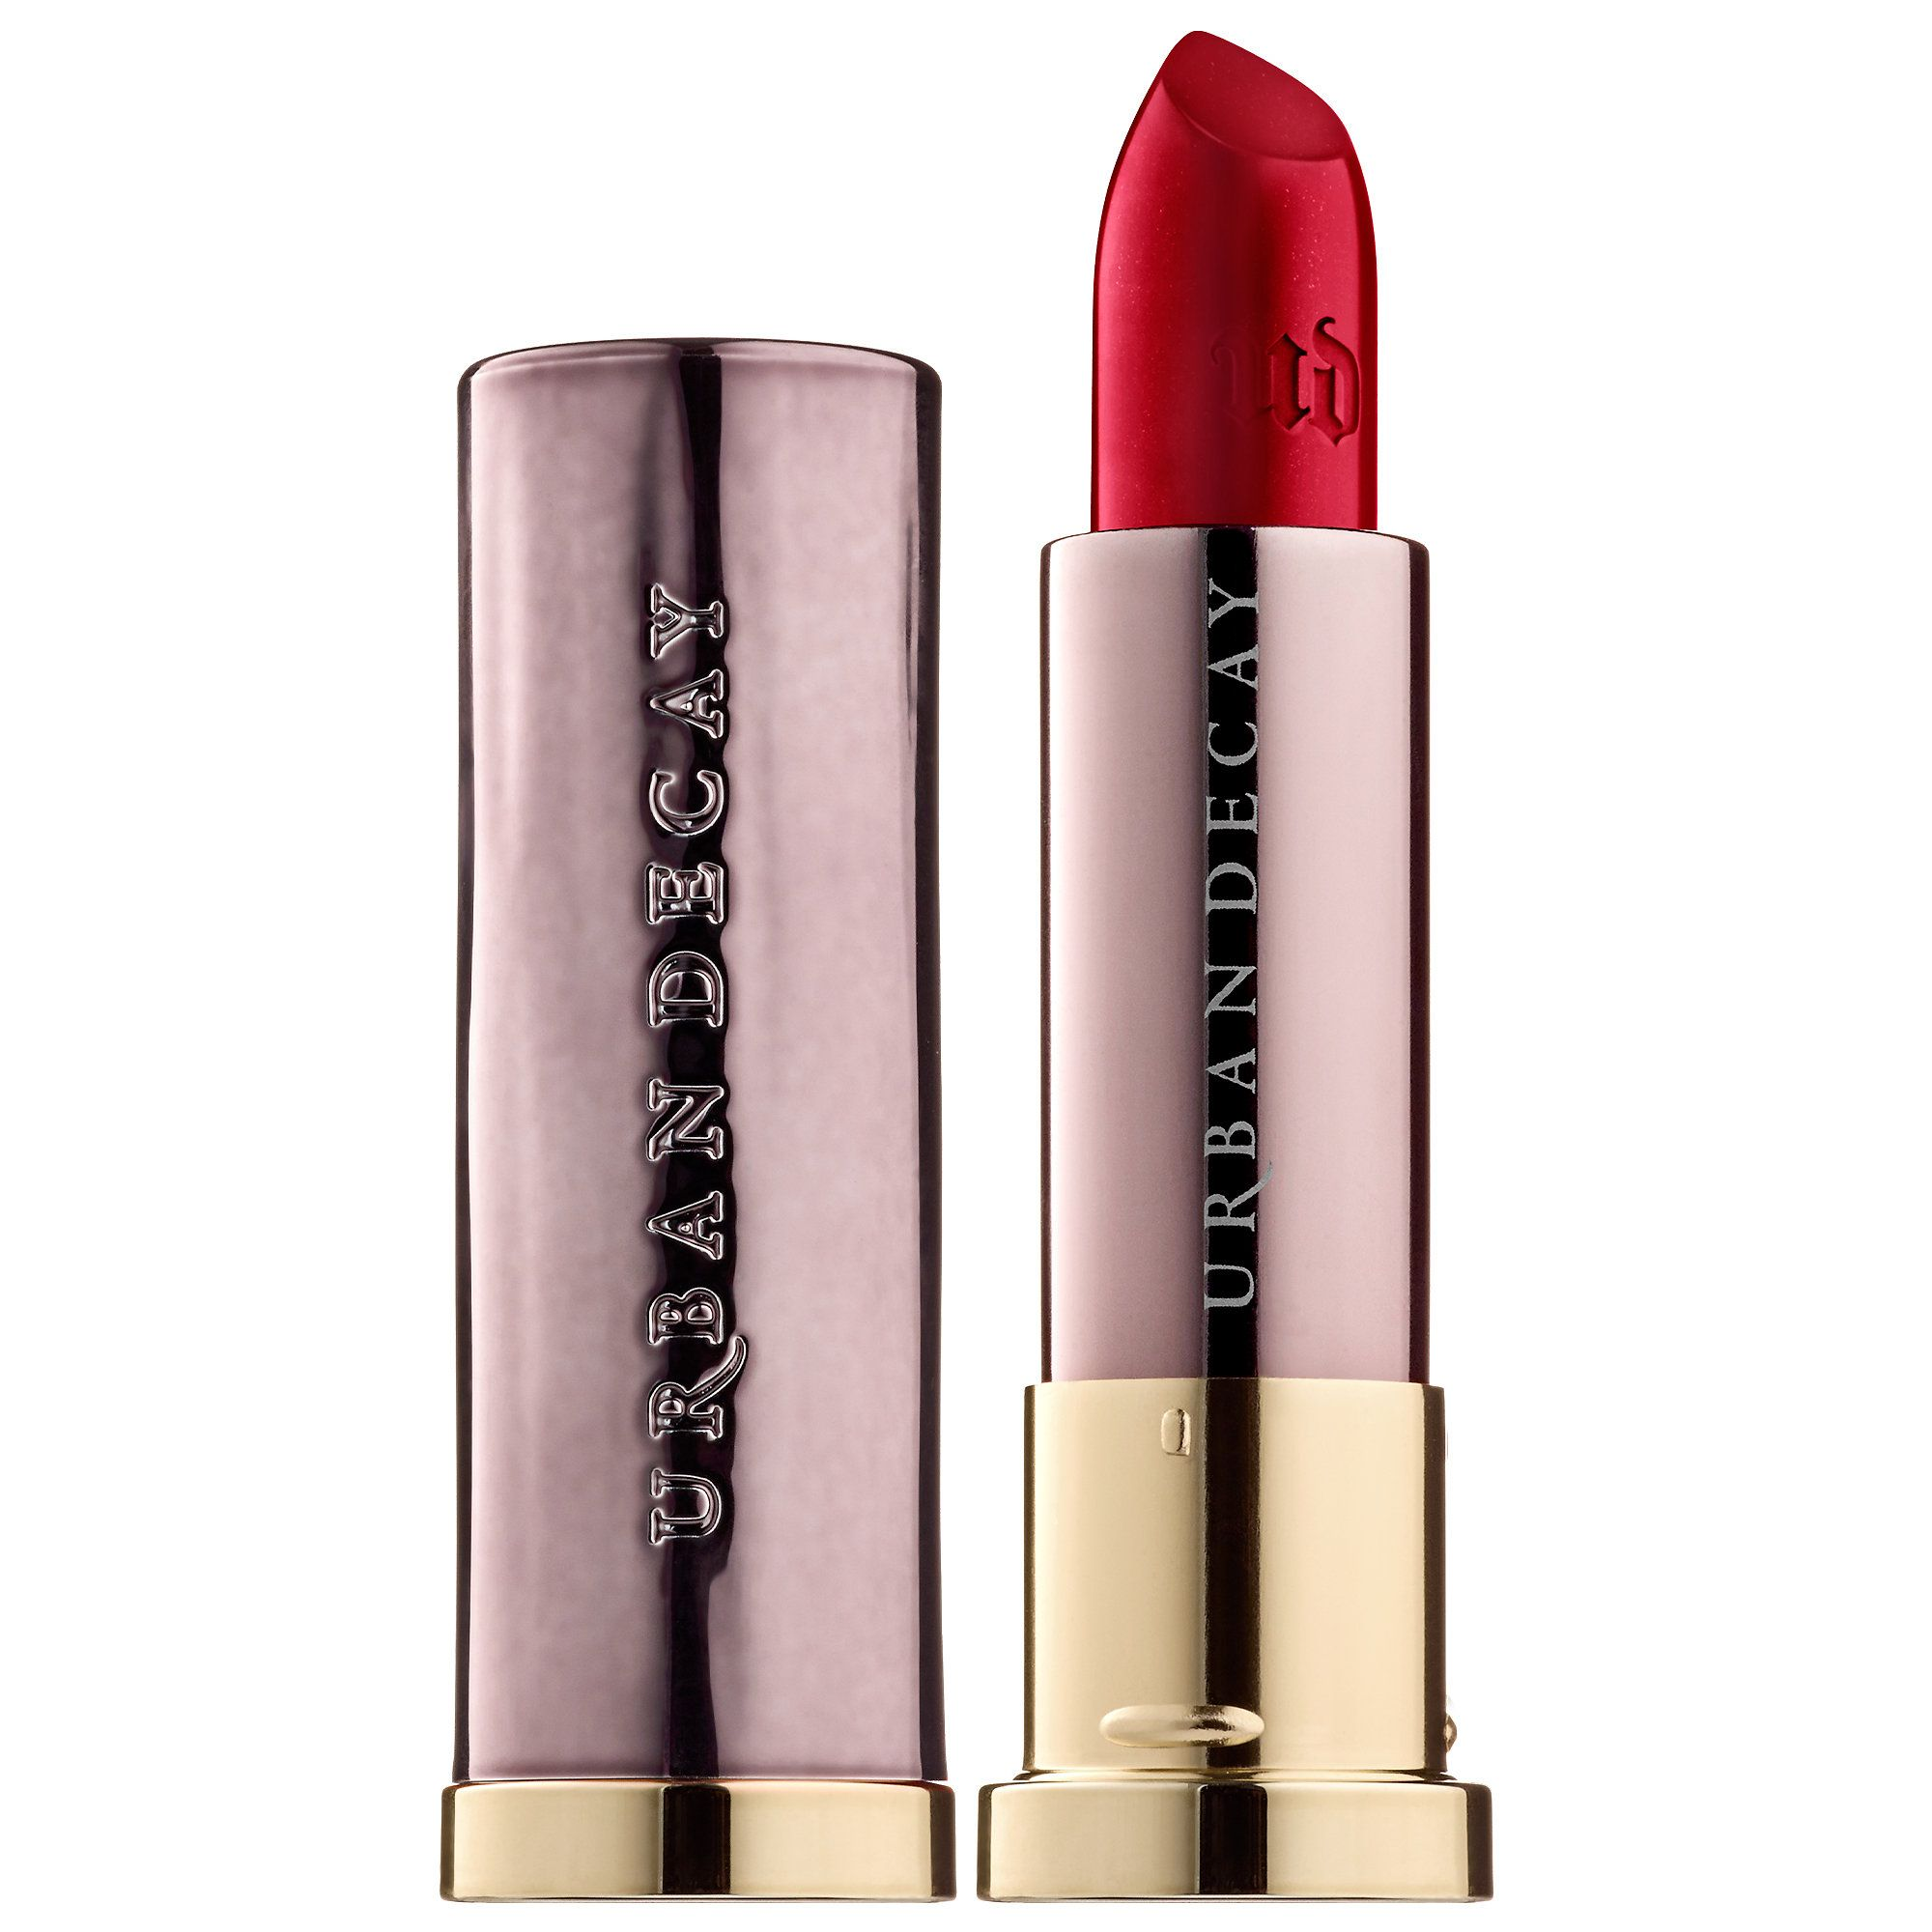 "<p><strong>Urban Decay </strong>Vice Lipstick in Bad Blood, $17, <a href=""http://www.sephora.com/vice-lipstick-P409523?skuId=1827641&icid2=products%20grid%3Ap409523"" target=""_blank"">sephora.com</a>.</p>"